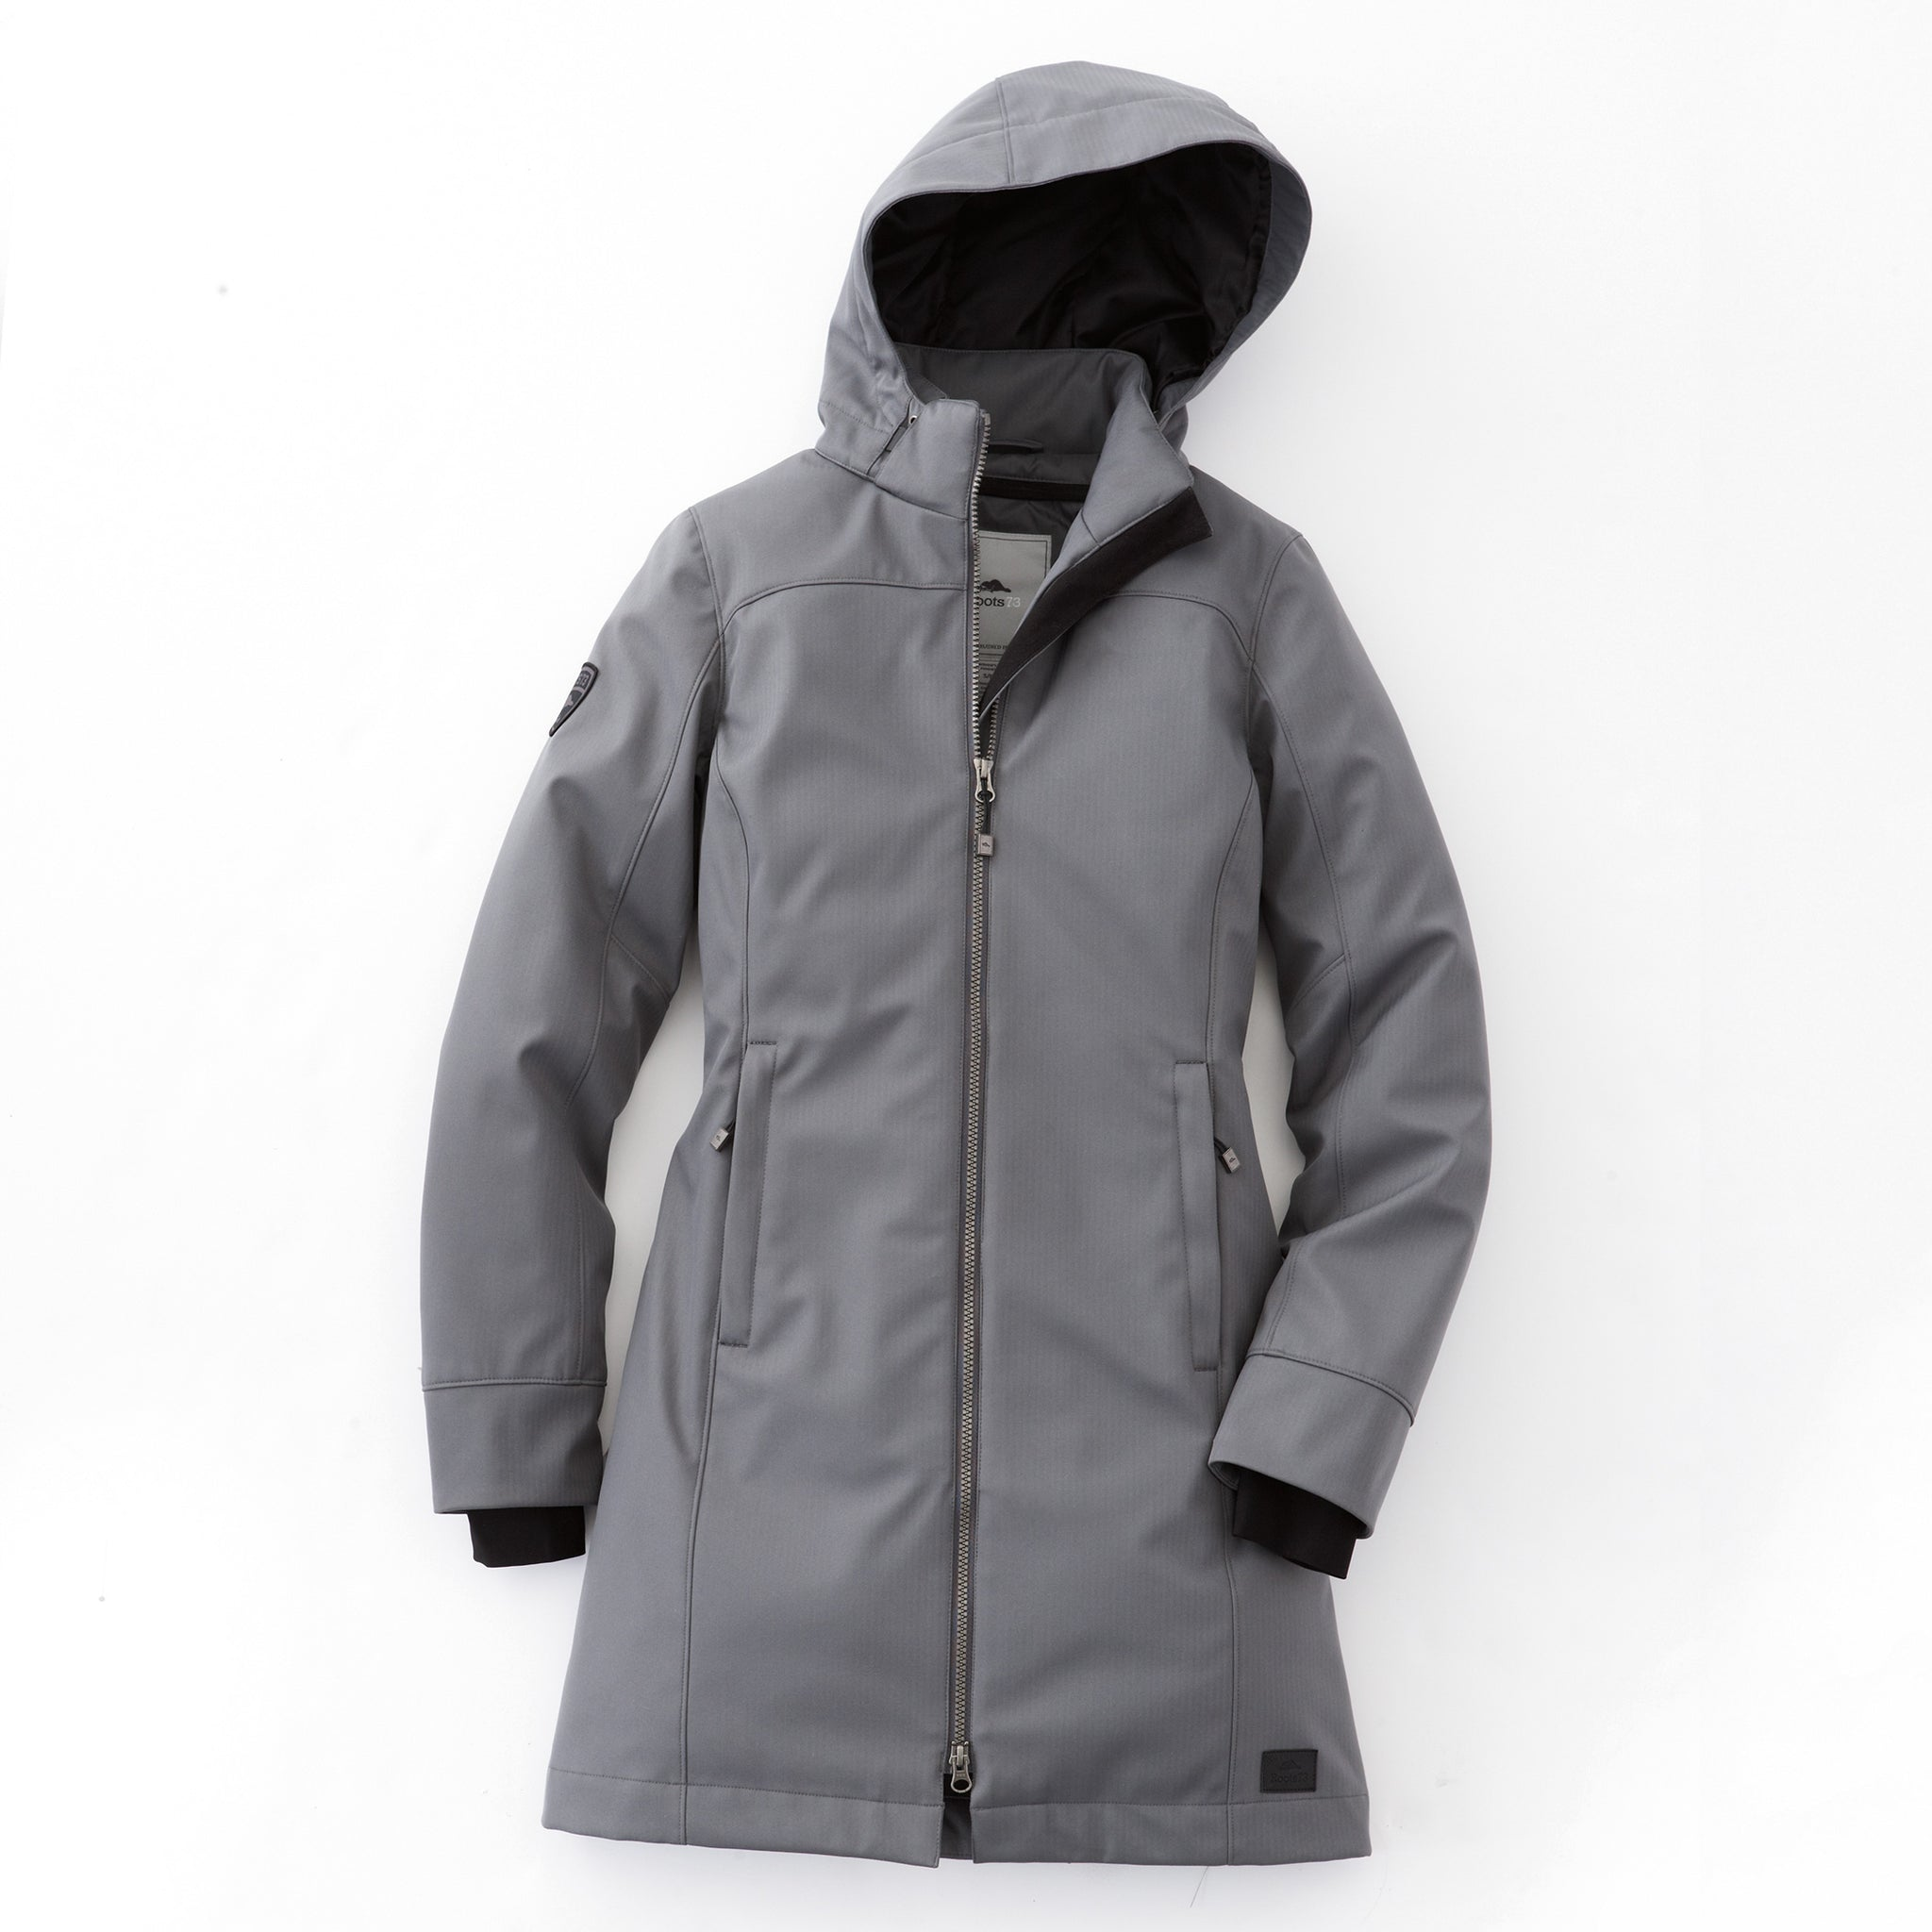 ROOTS73 LADIES NORTHLAKE INSULATED SOFT SHELL JACKET